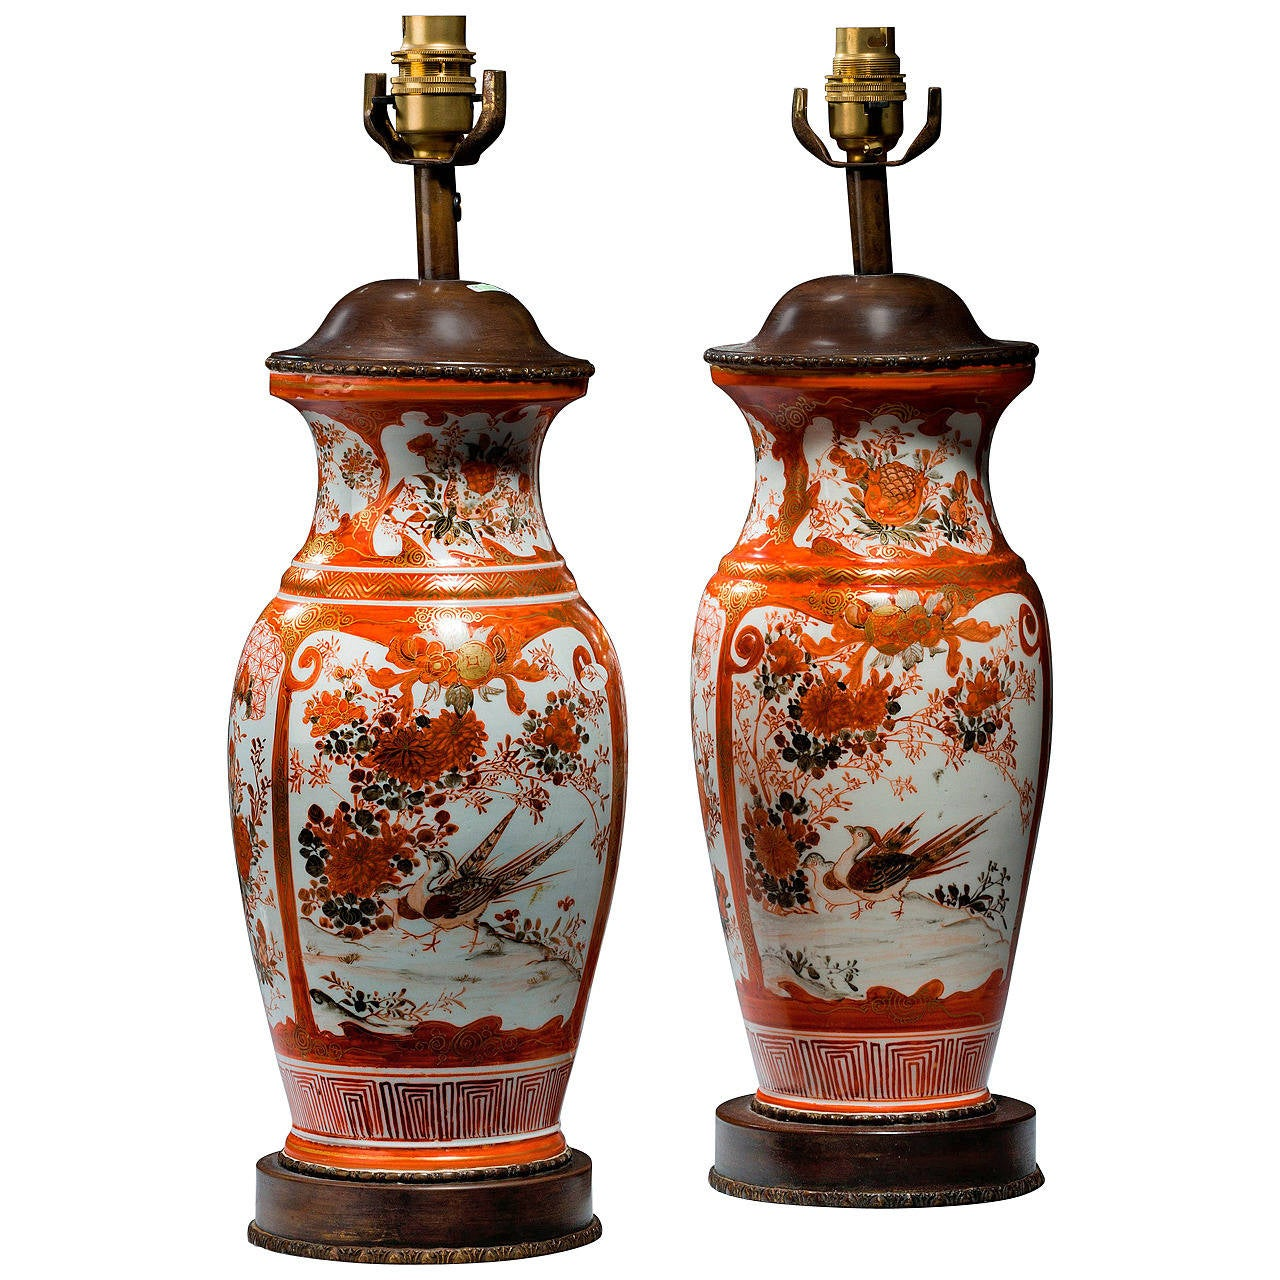 Pair of early 20th century Japanese Porcelain Vase Lamps